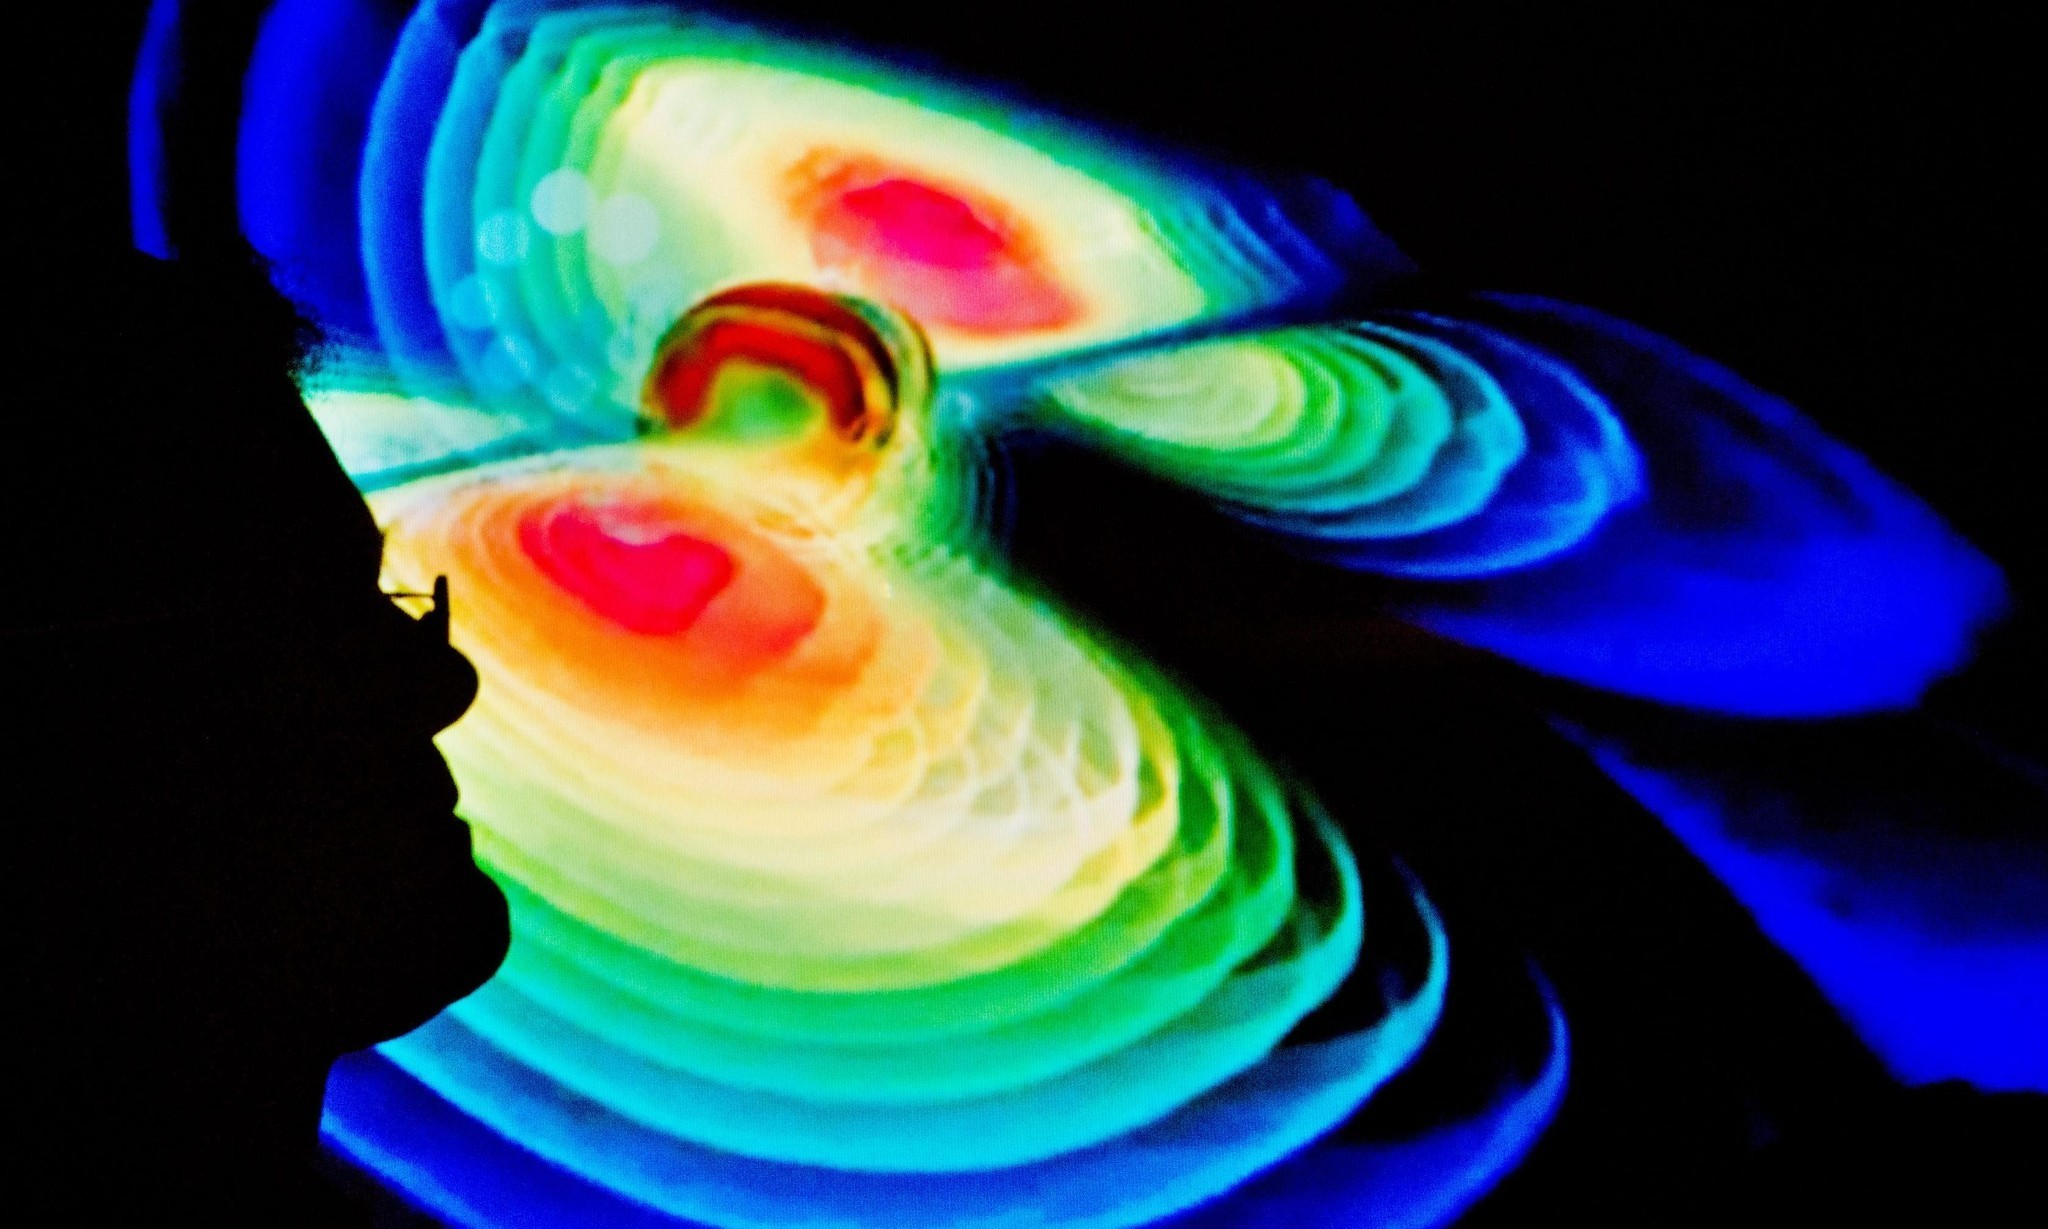 Tying loose ends? Gravitational waves could solve string theory, study claims